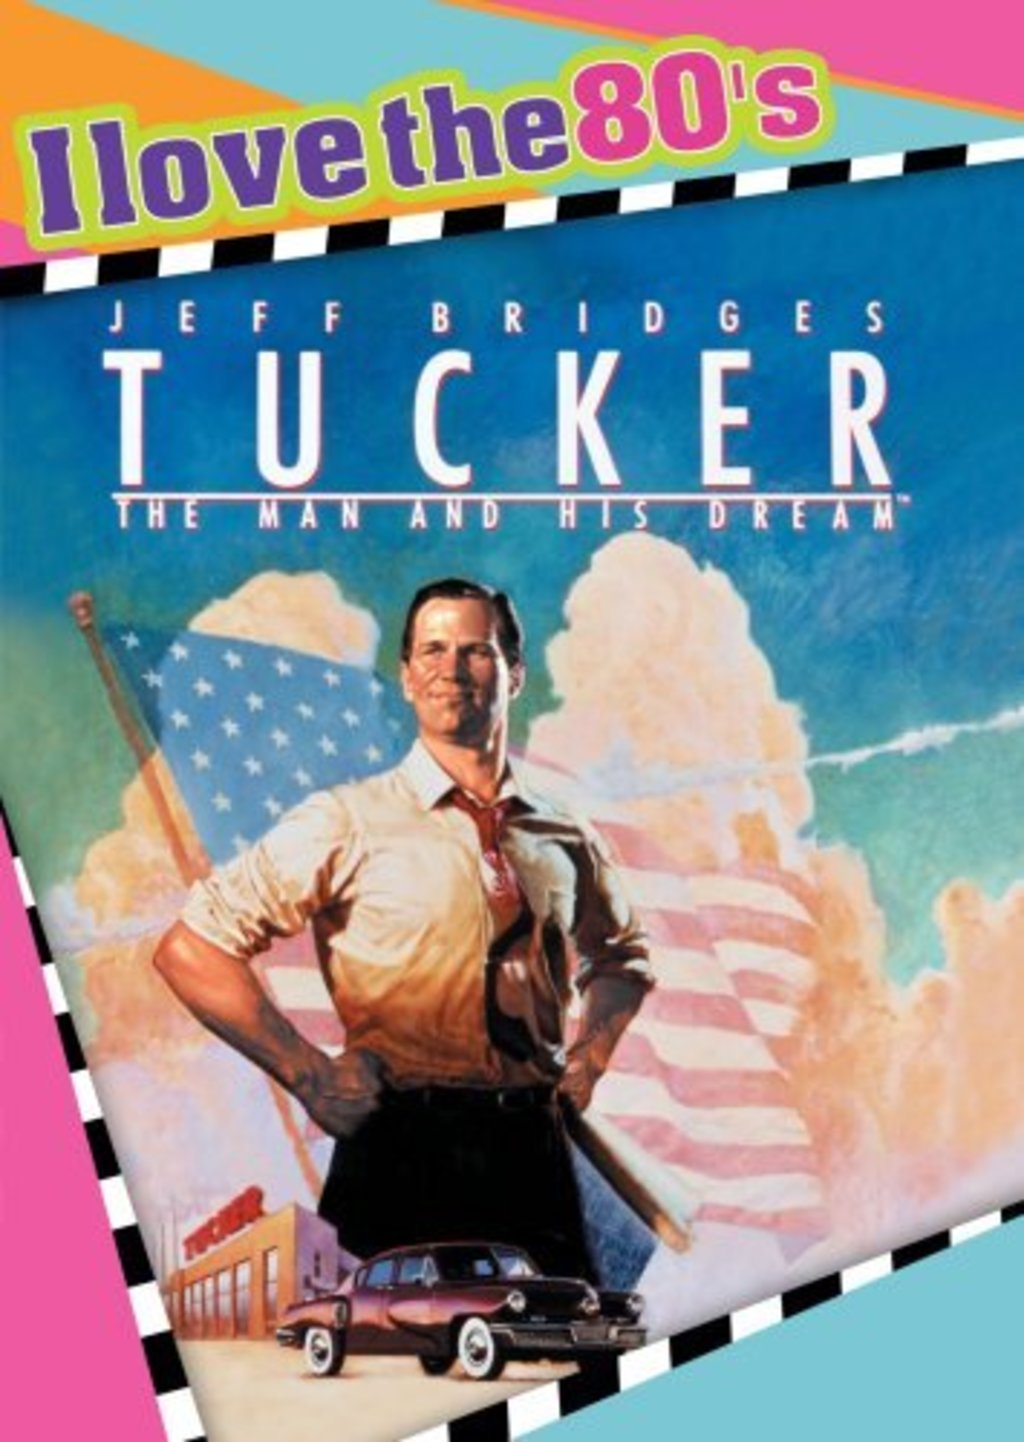 Watch tucker the man and his dream free